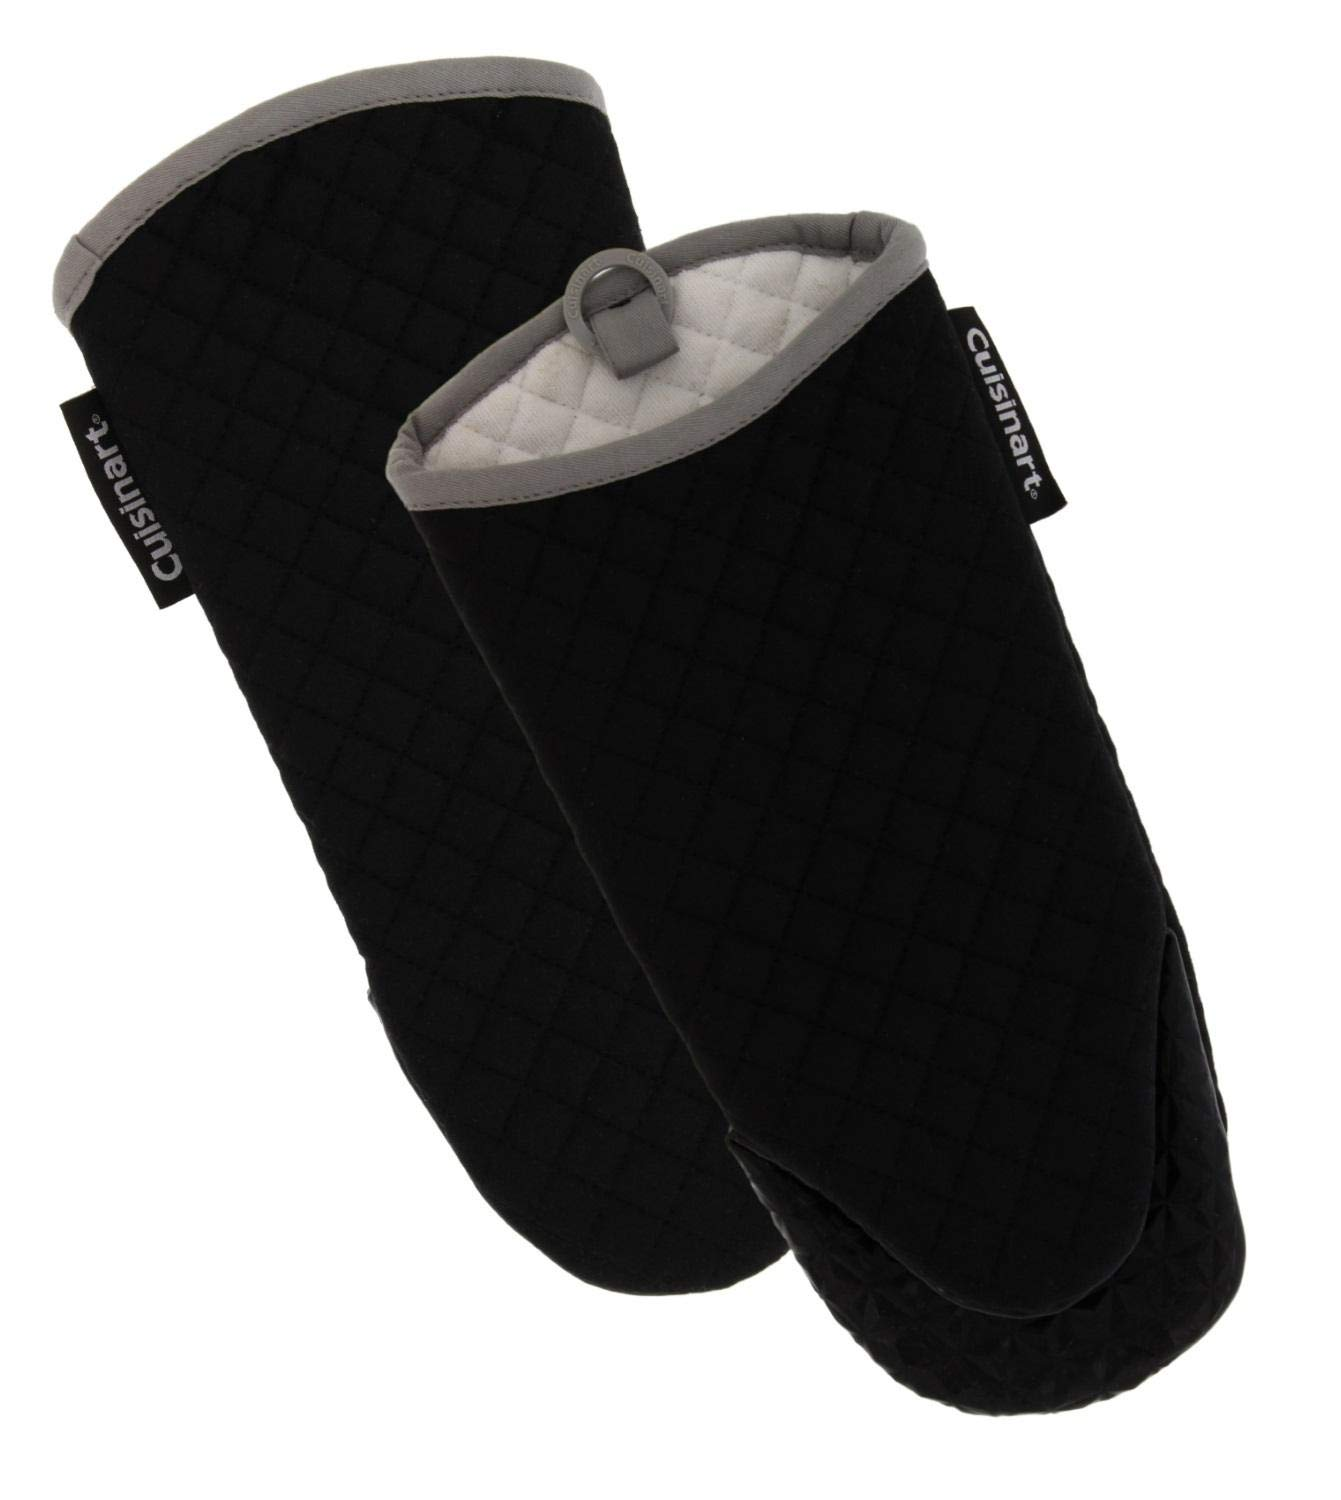 Cuisinart Silicone Oven Mitts/Gloves - Heat Resistant up to 500 F, Handle Hot Oven/Cooking Items Safely - Soft Insulated Deep Pockets, Non-Slip Grip and Convenient Hanging Loop – Jet Black, 2pk